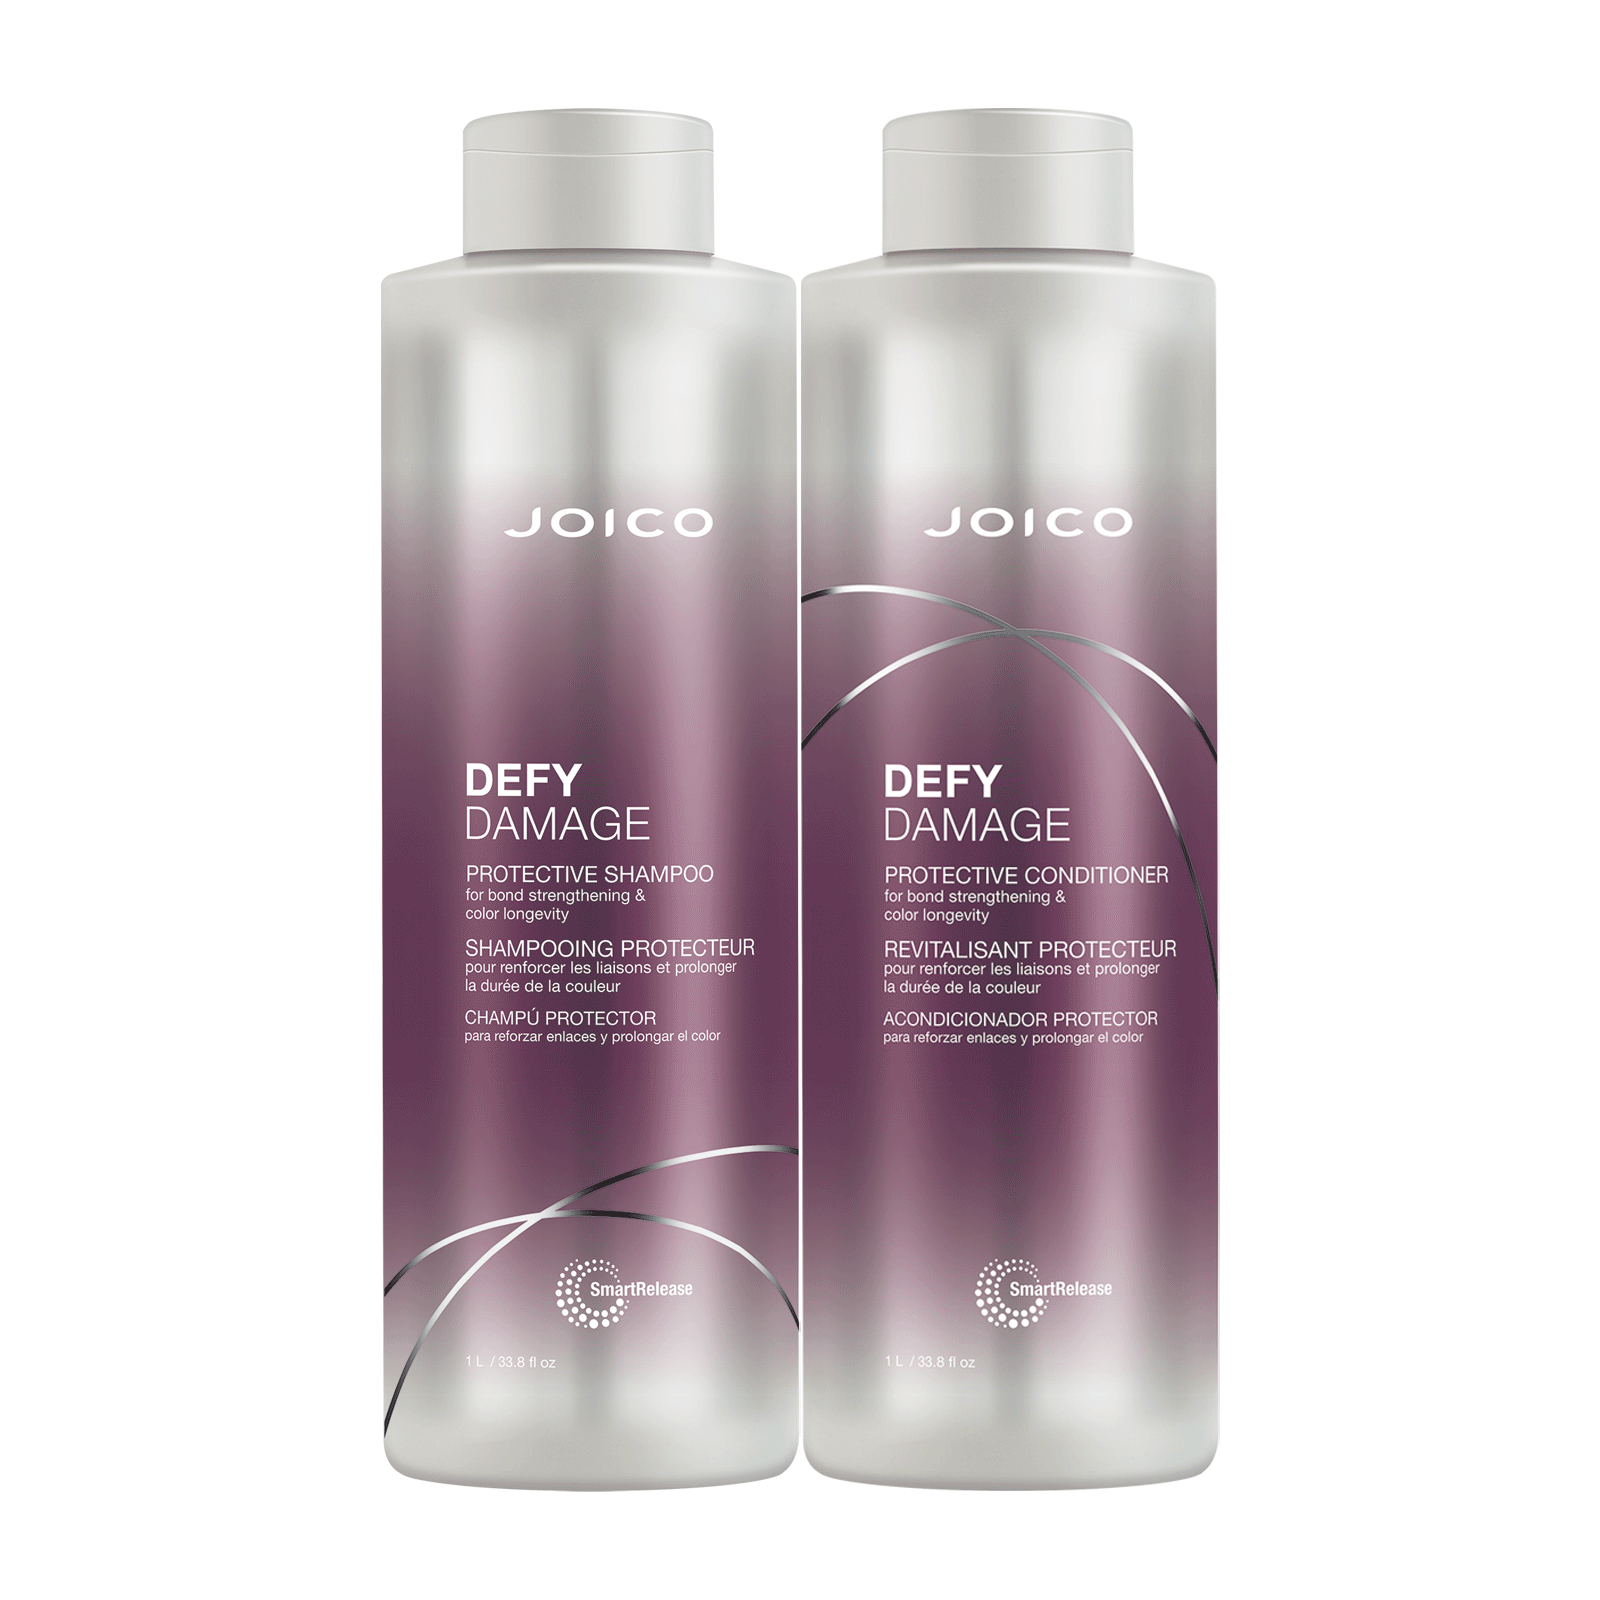 Defy Damage Protective Shampoo & Conditioner Liter Duo